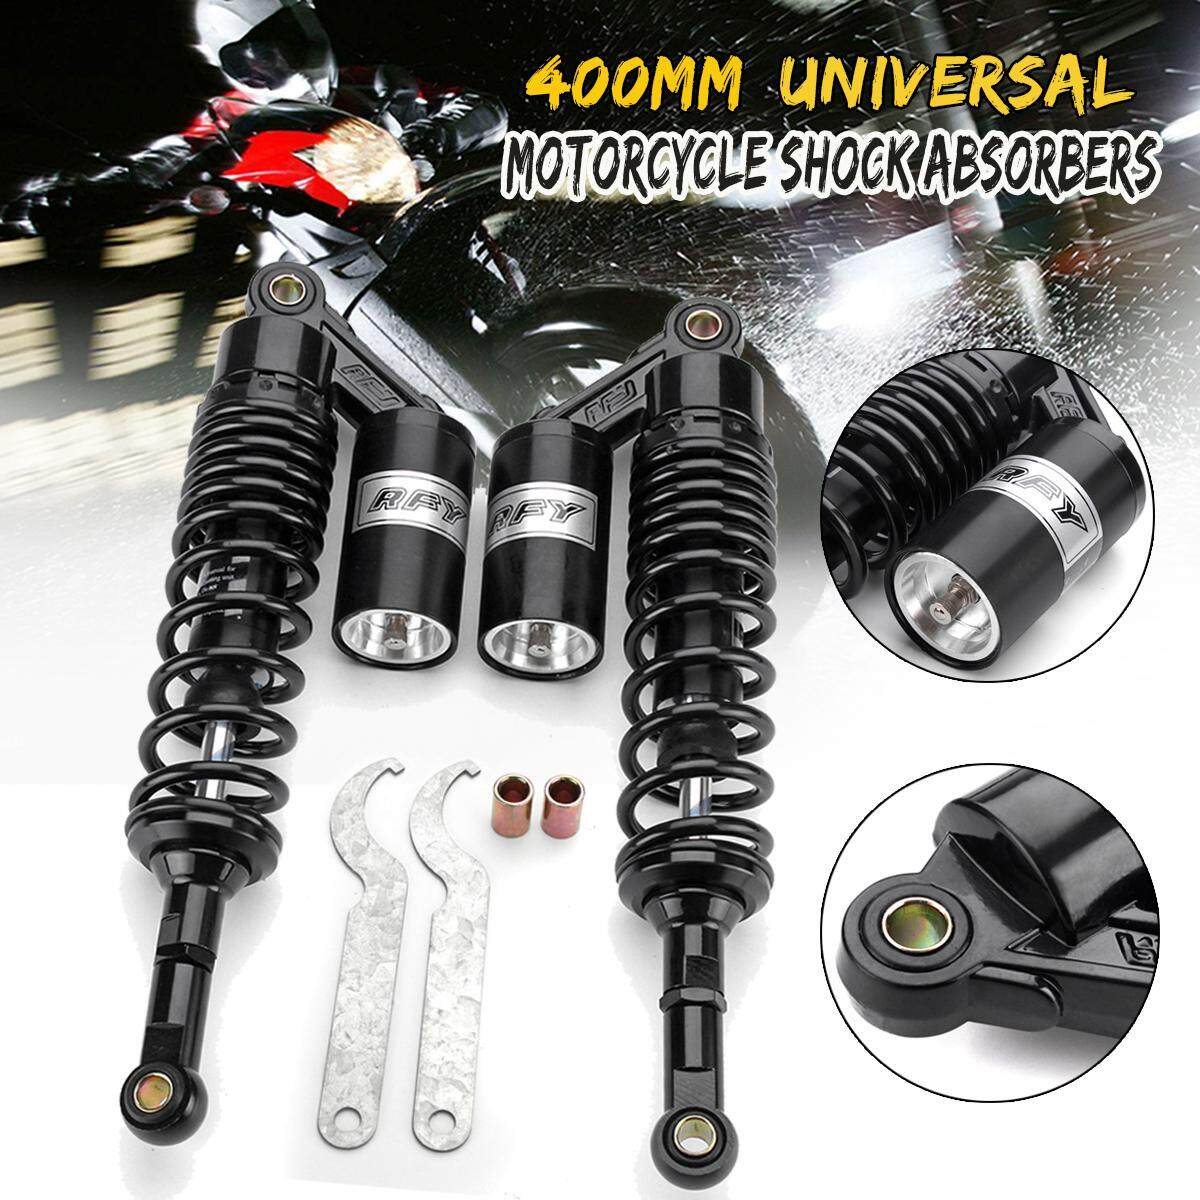 Pair 15.74 400mm Motorcycle Rear Air Shock Absorber Suspension Damper Round Black Silver By Freebang.